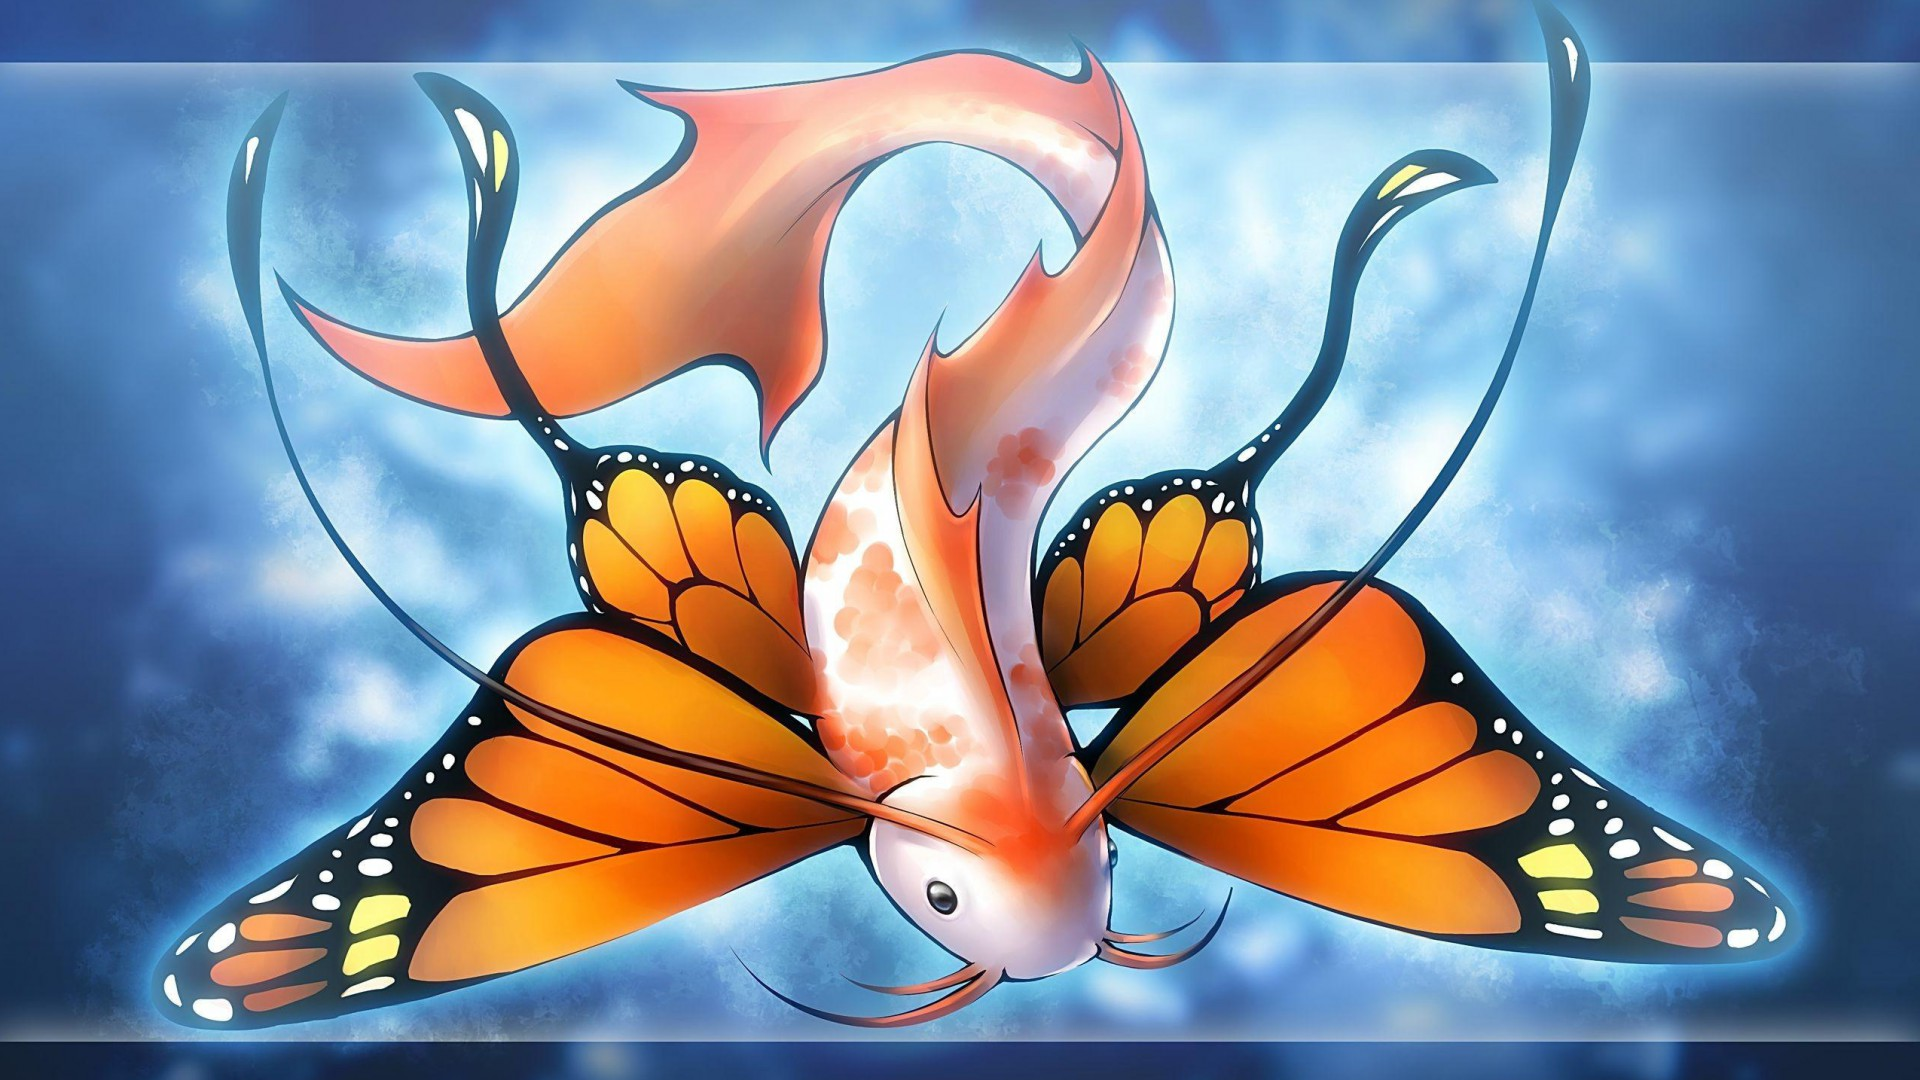 fish-fantasy-butterfly-wings-fish-beard-blue-background-yellow-tail-1920x1080